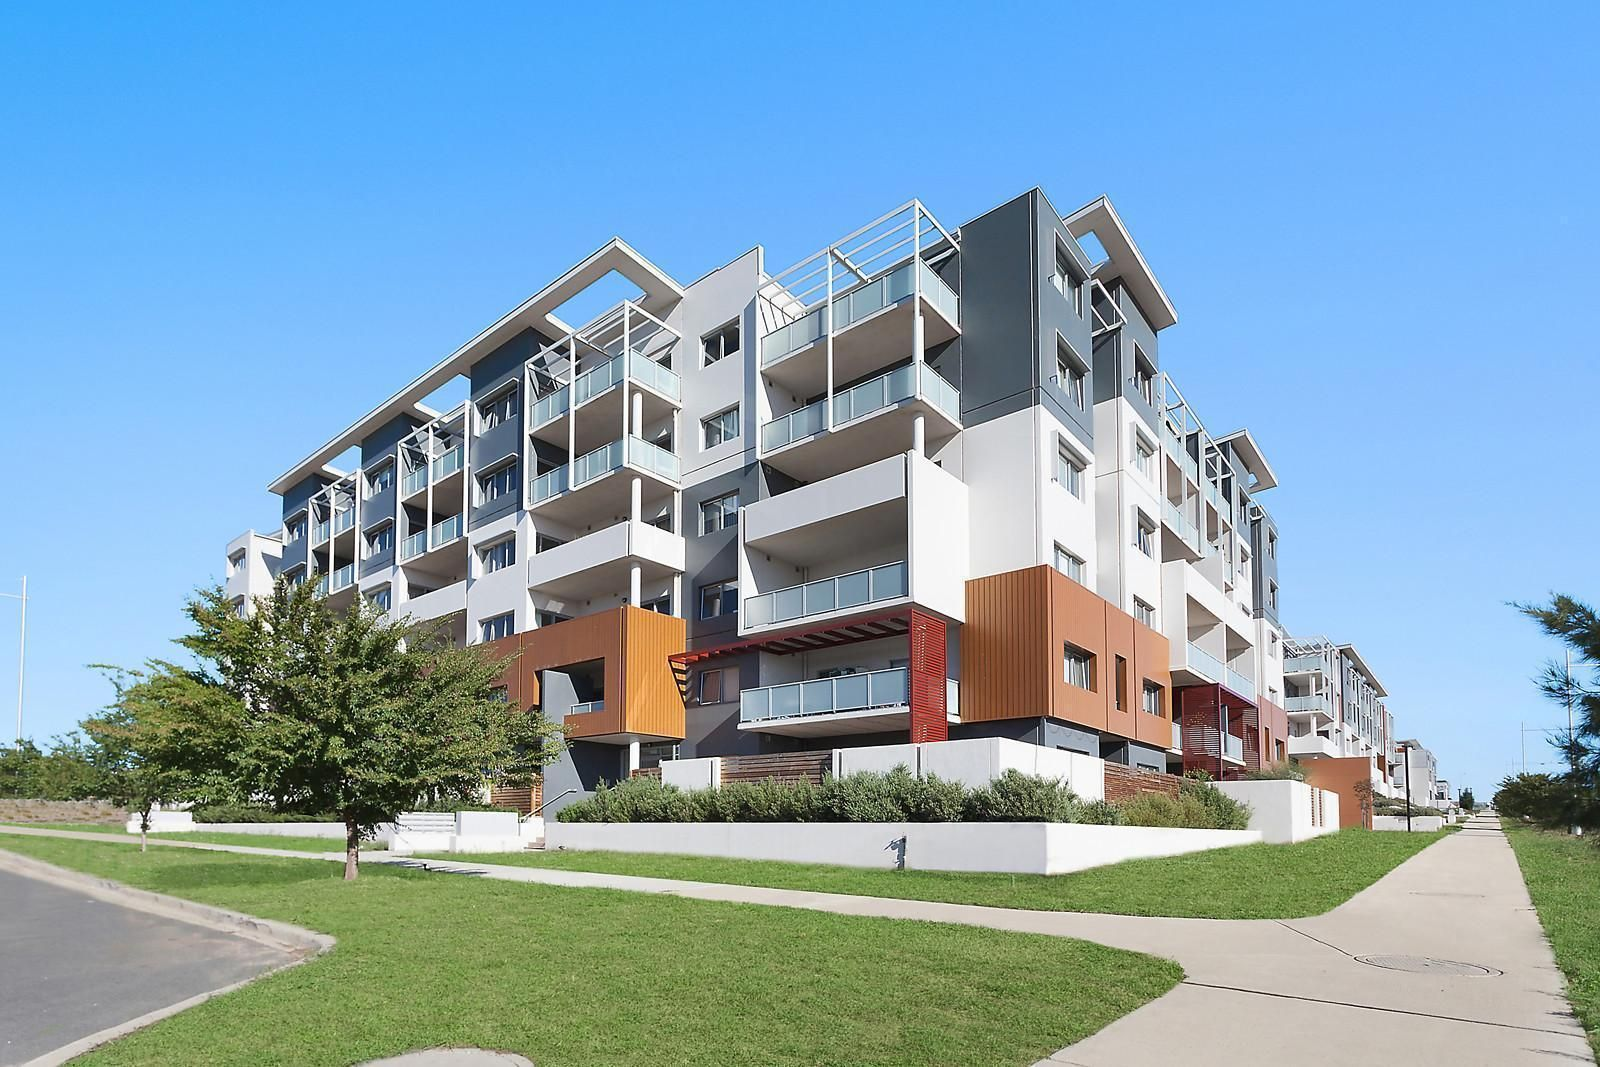 89/2 Peter Cullen Way, Wright ACT 2611, Image 0